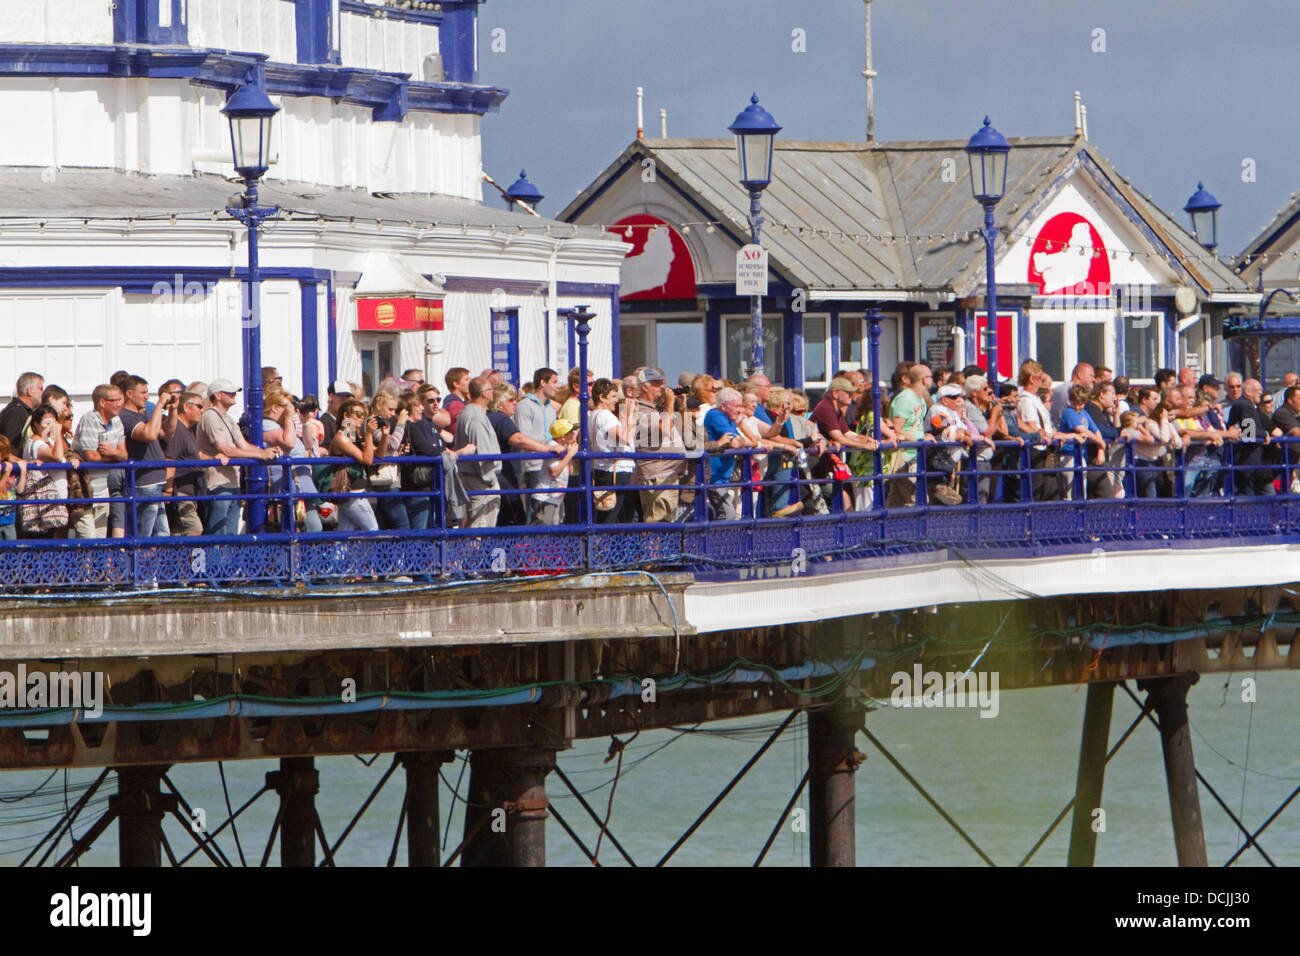 Eastbourne, UK. 18th Aug, 2013. The crowds lined the pier during Airbourne display. ©Keith Larby/Alamy Live - Stock Image